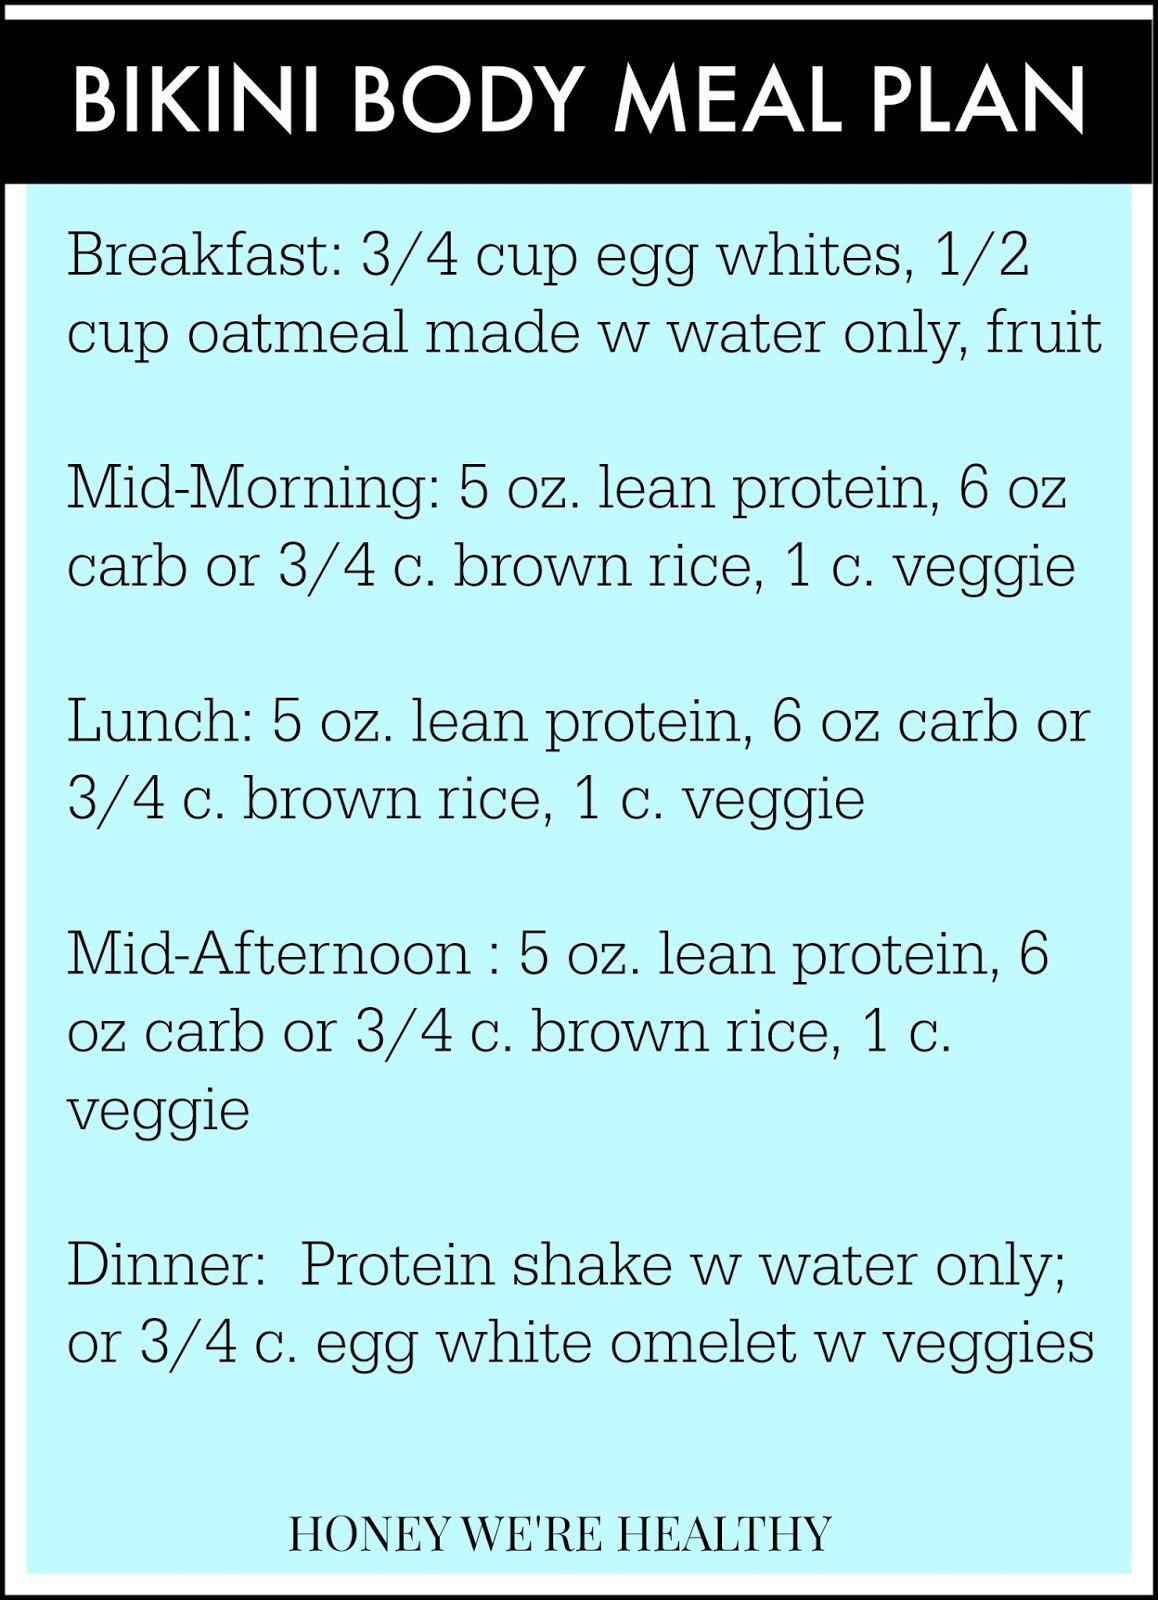 Diet plan in ninth month of pregnancy